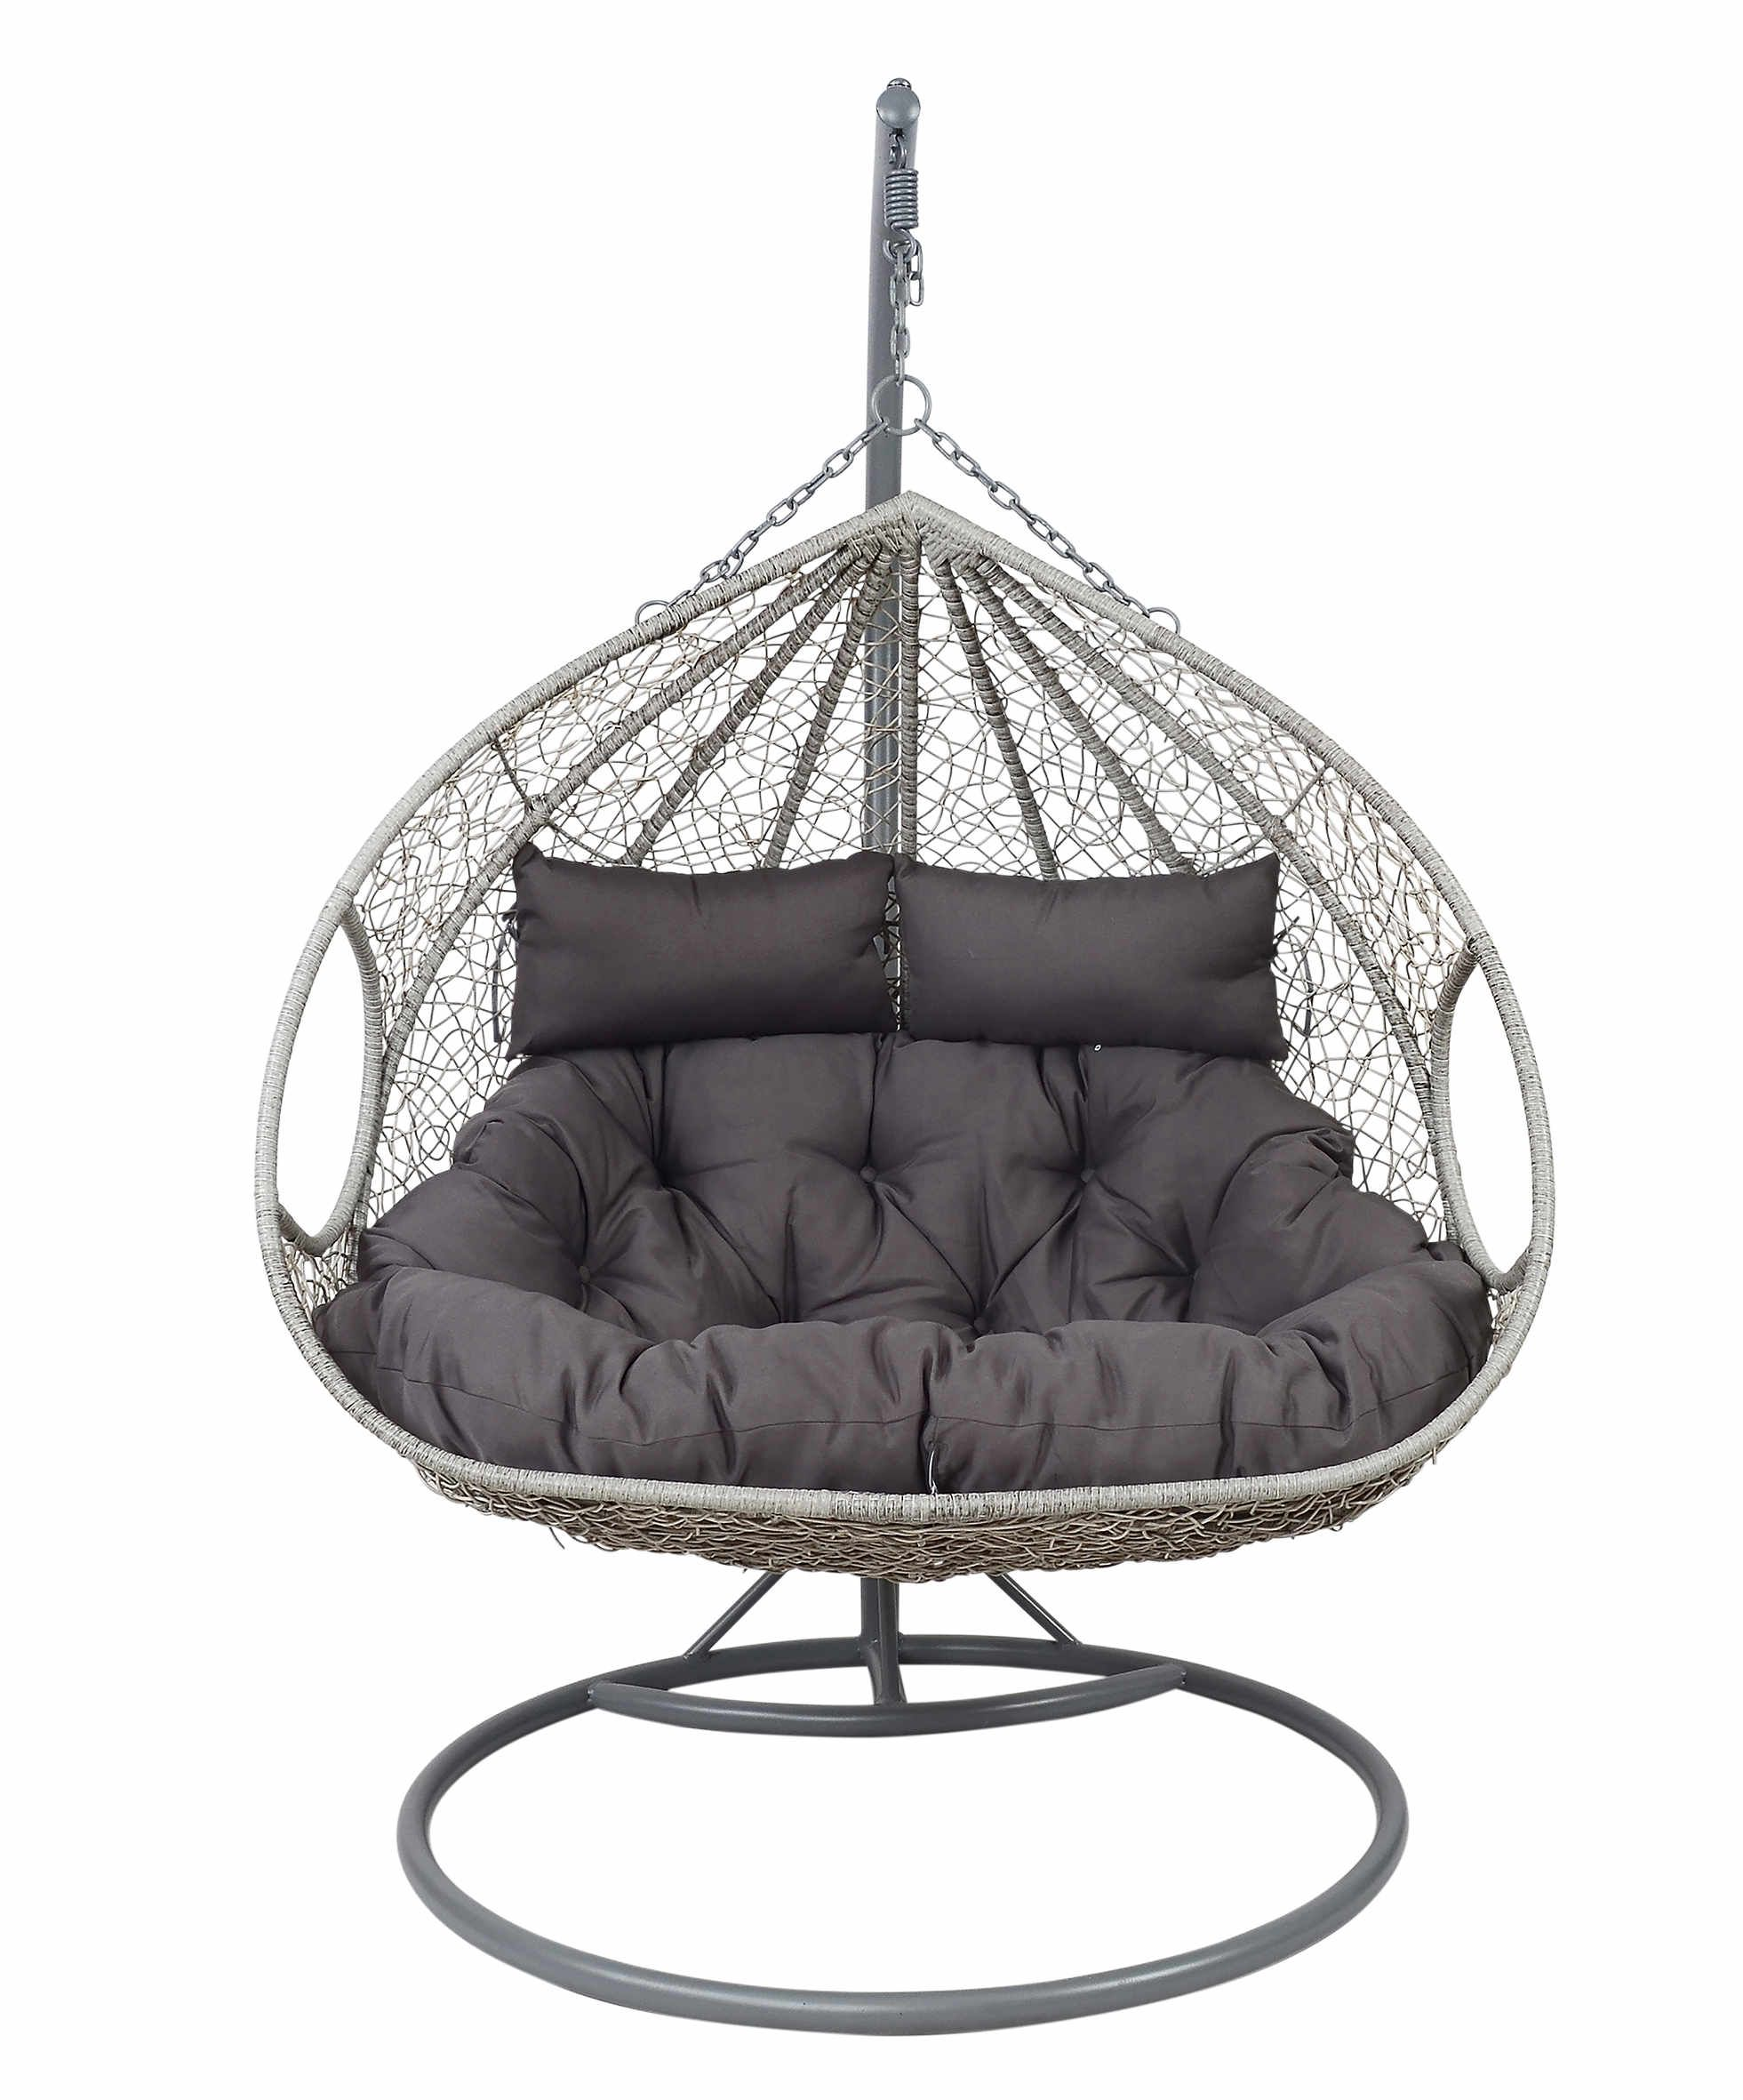 Lesli Living Hangesessel Grizzly 2 Personen Online Kaufen Lesli Living Hangesessel Grizzly 2 Personen Vom Fachhandle Hanging Chair Swinging Chair Chill Room